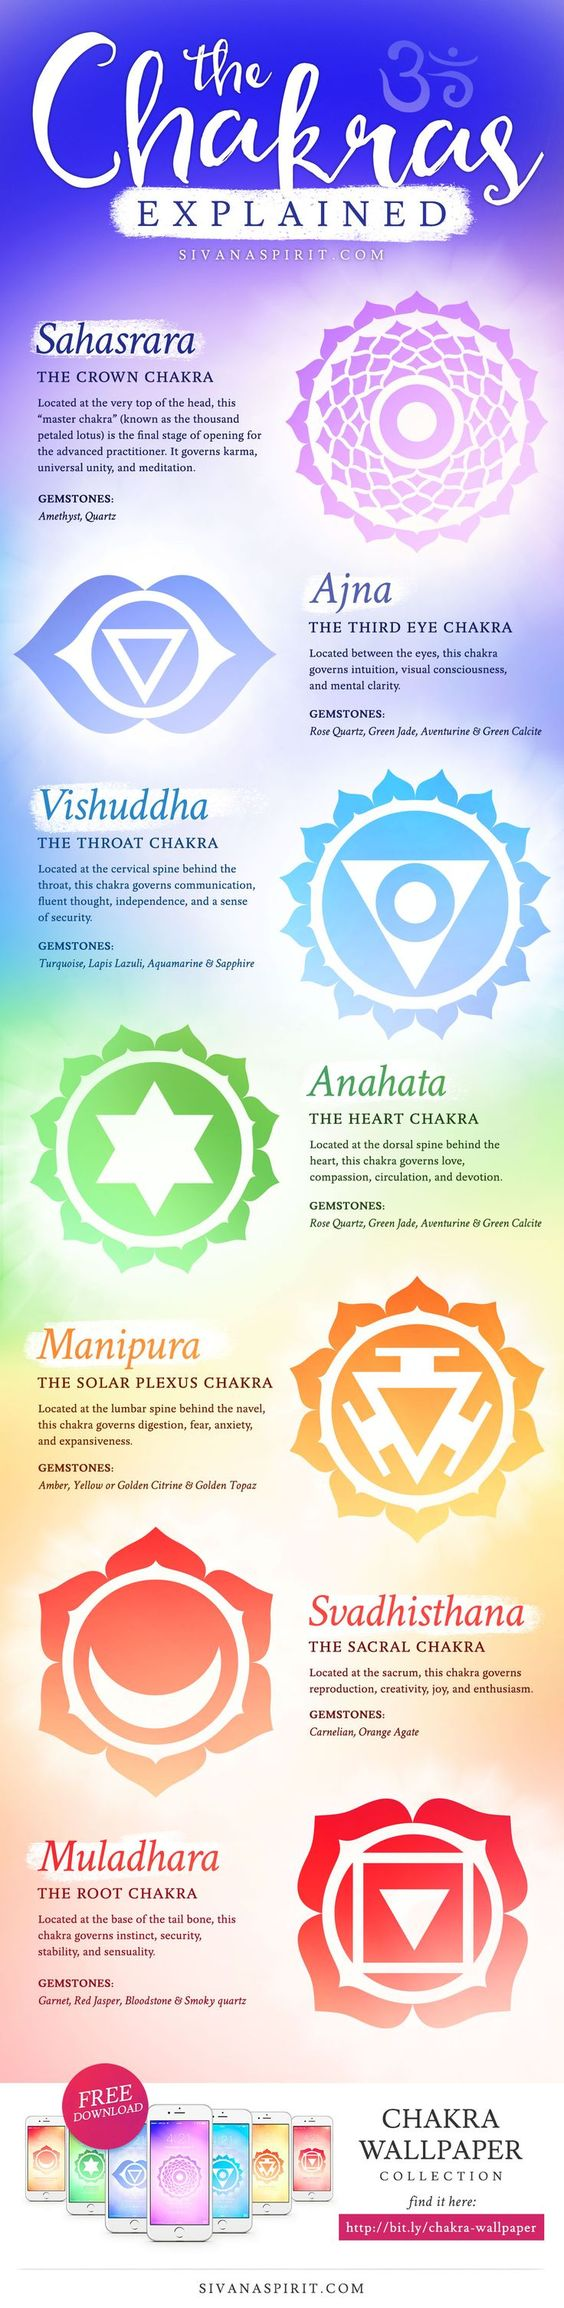 This beautiful infographic explains chakras in an easy to understand format.: